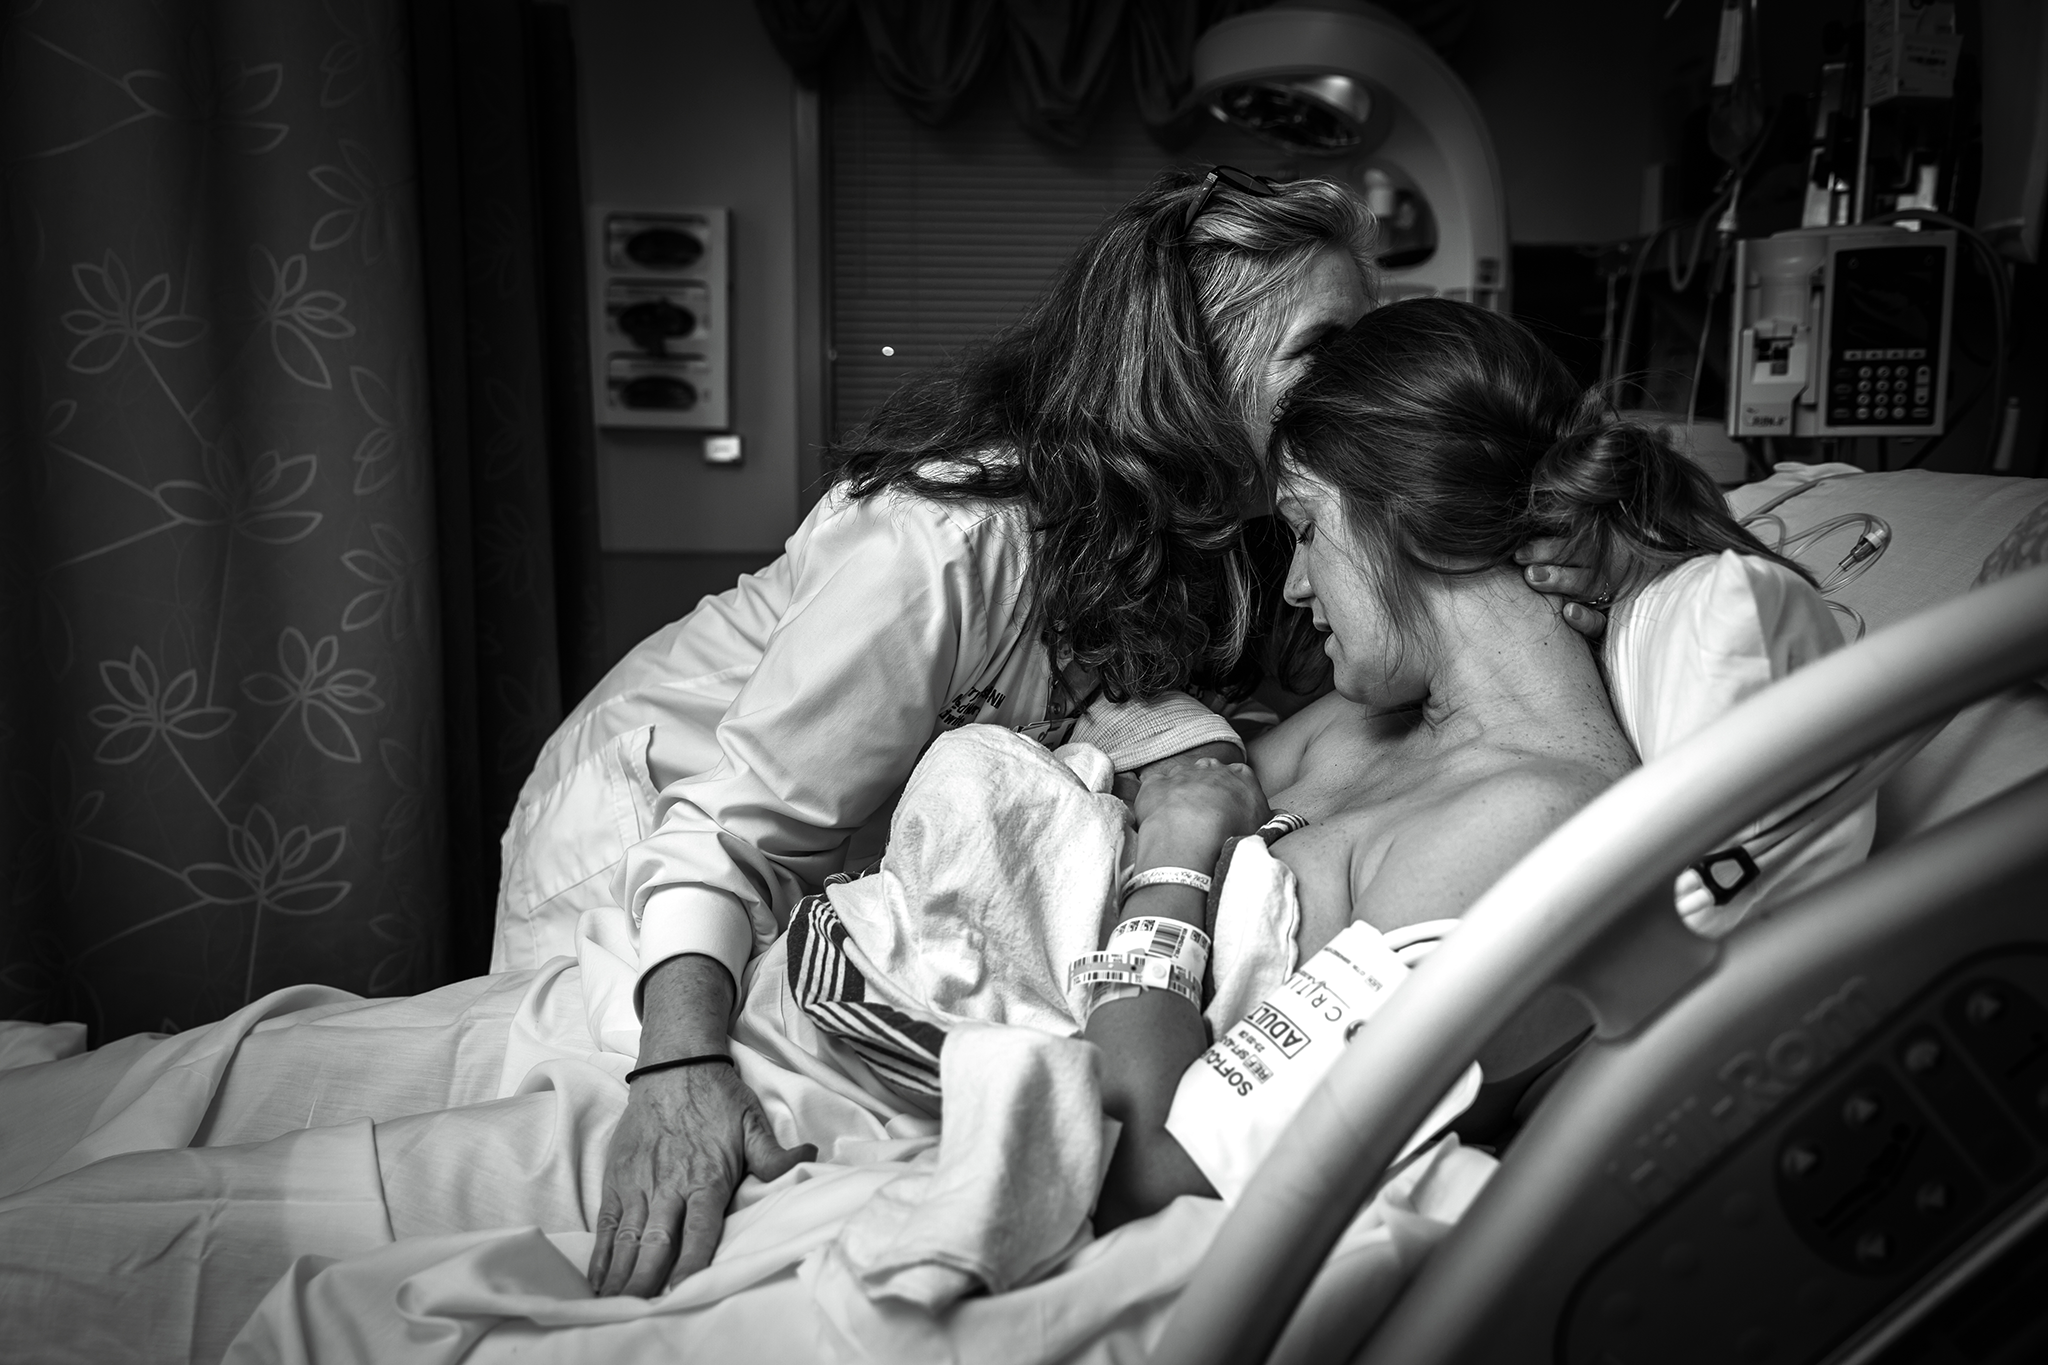 columbus, ga birth photography, ker-fox photography, midwife embracing and kissing patient